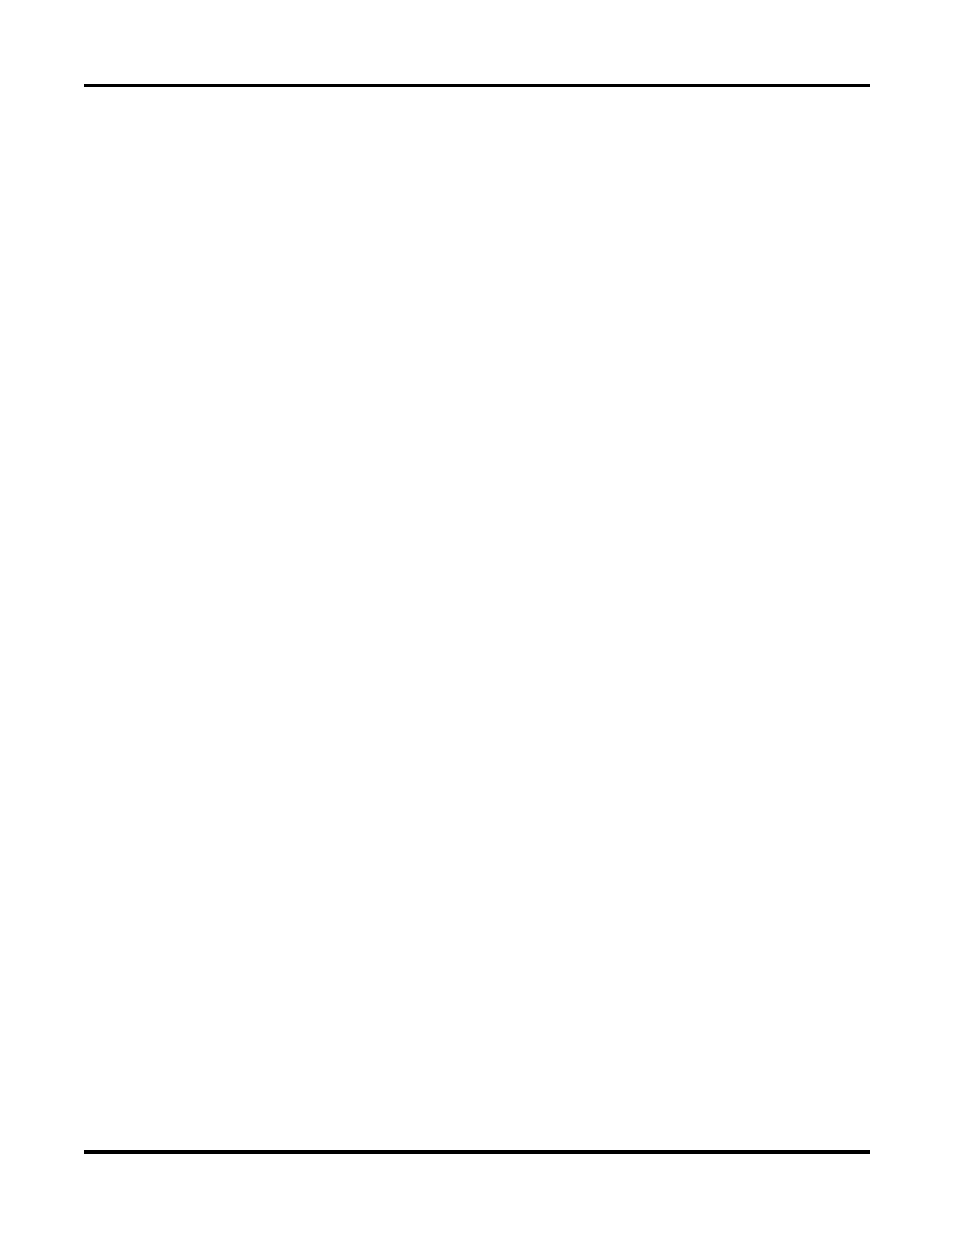 Troubleshooting | Dixon ZTR 7025 User Manual | Page 35 / 40